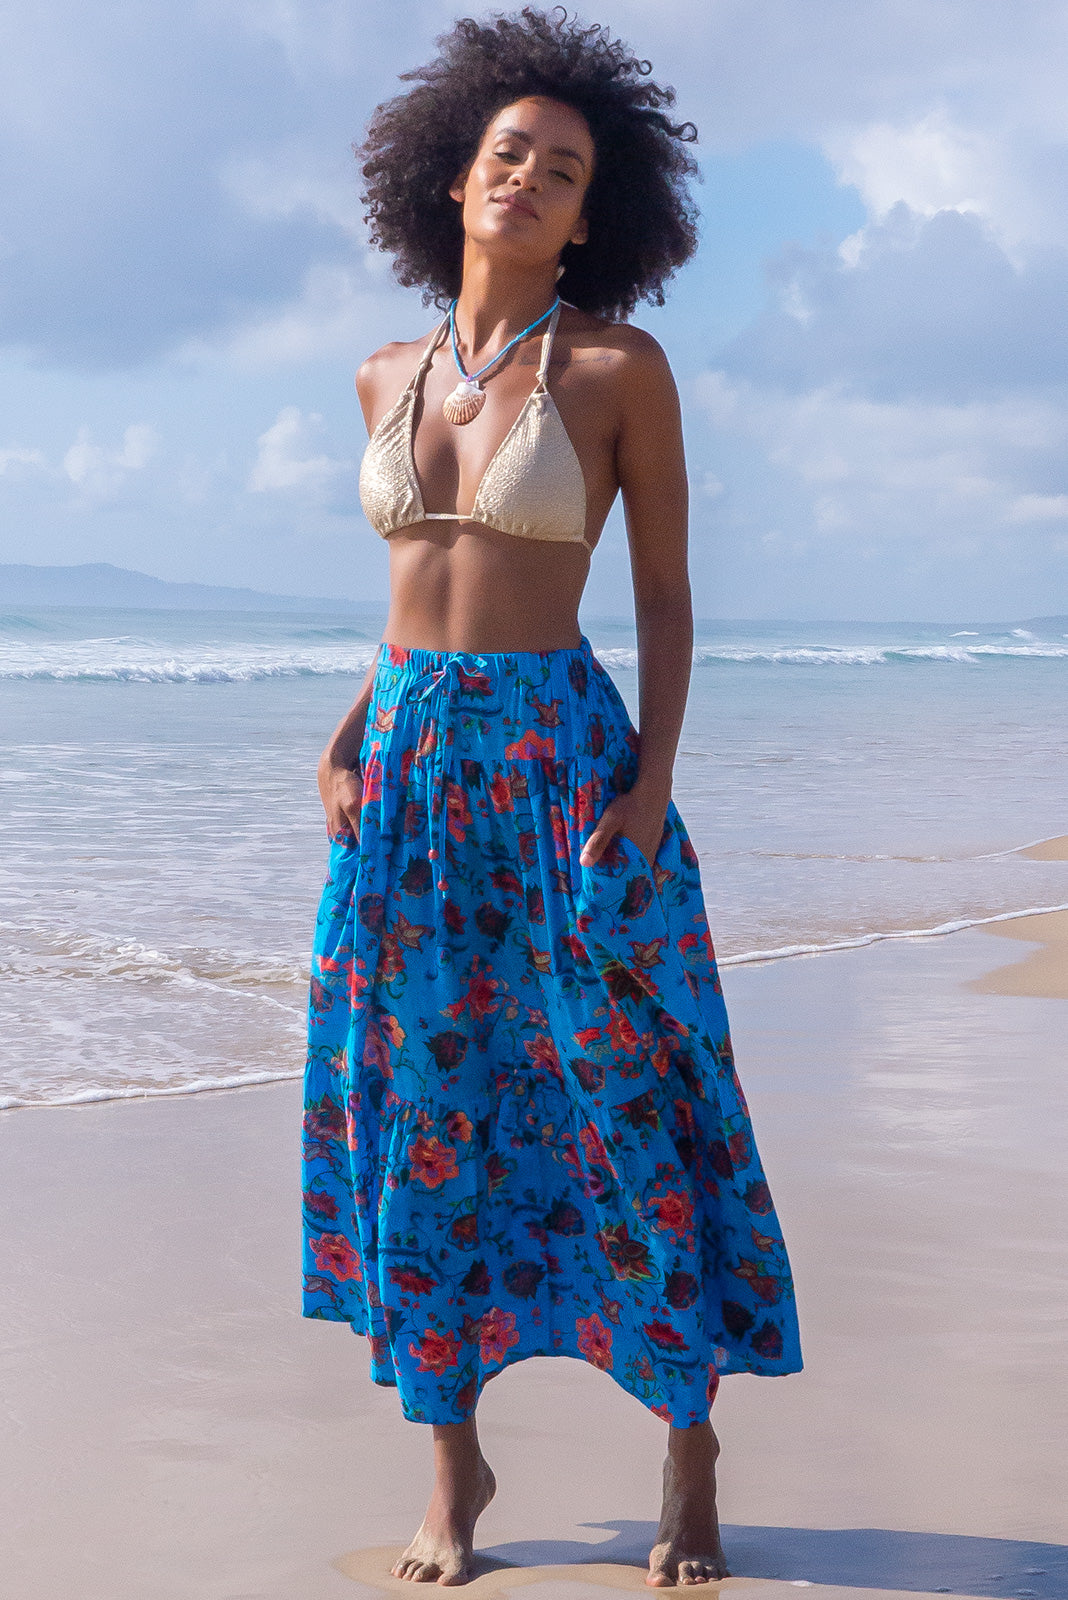 The Valencia Barrio Blue Maxi Skirt is a comfortable slip-on style maxi skirt featuring tiered for fullness, side pockets and cotton/viscose blend in bright blue base with large paisley print.